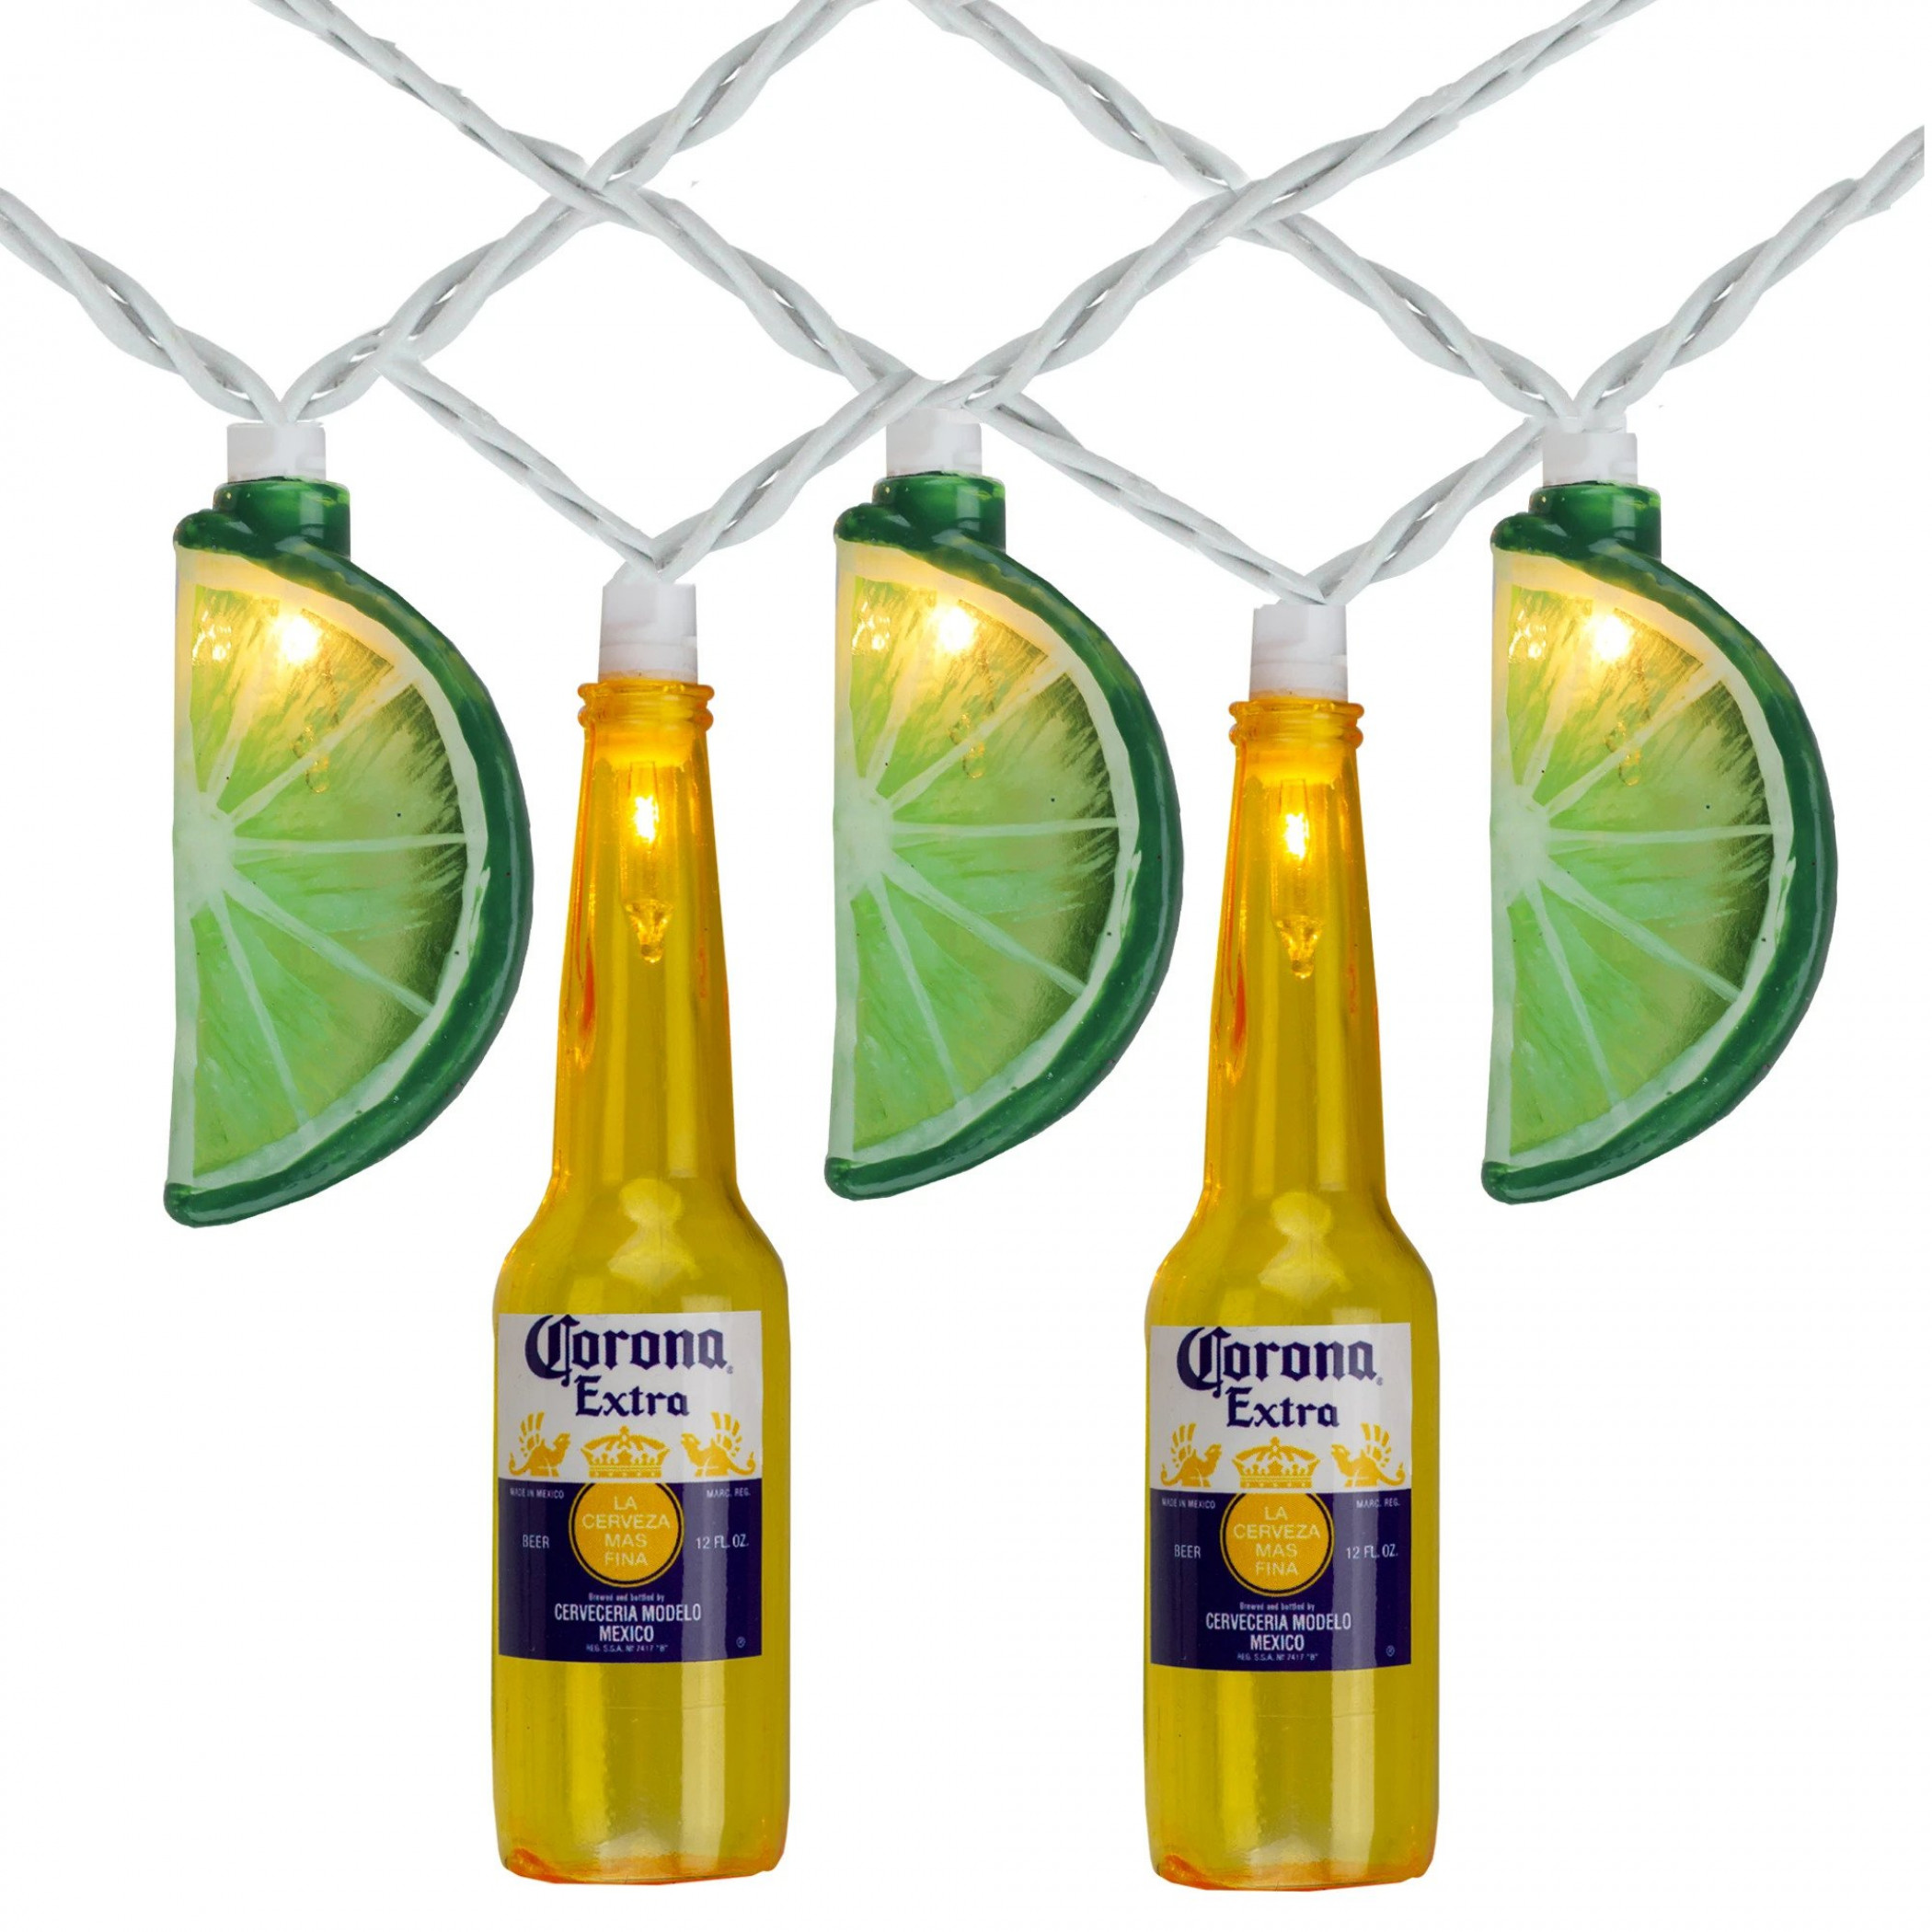 Corona Extra Beer Bottle and Limes String Lights